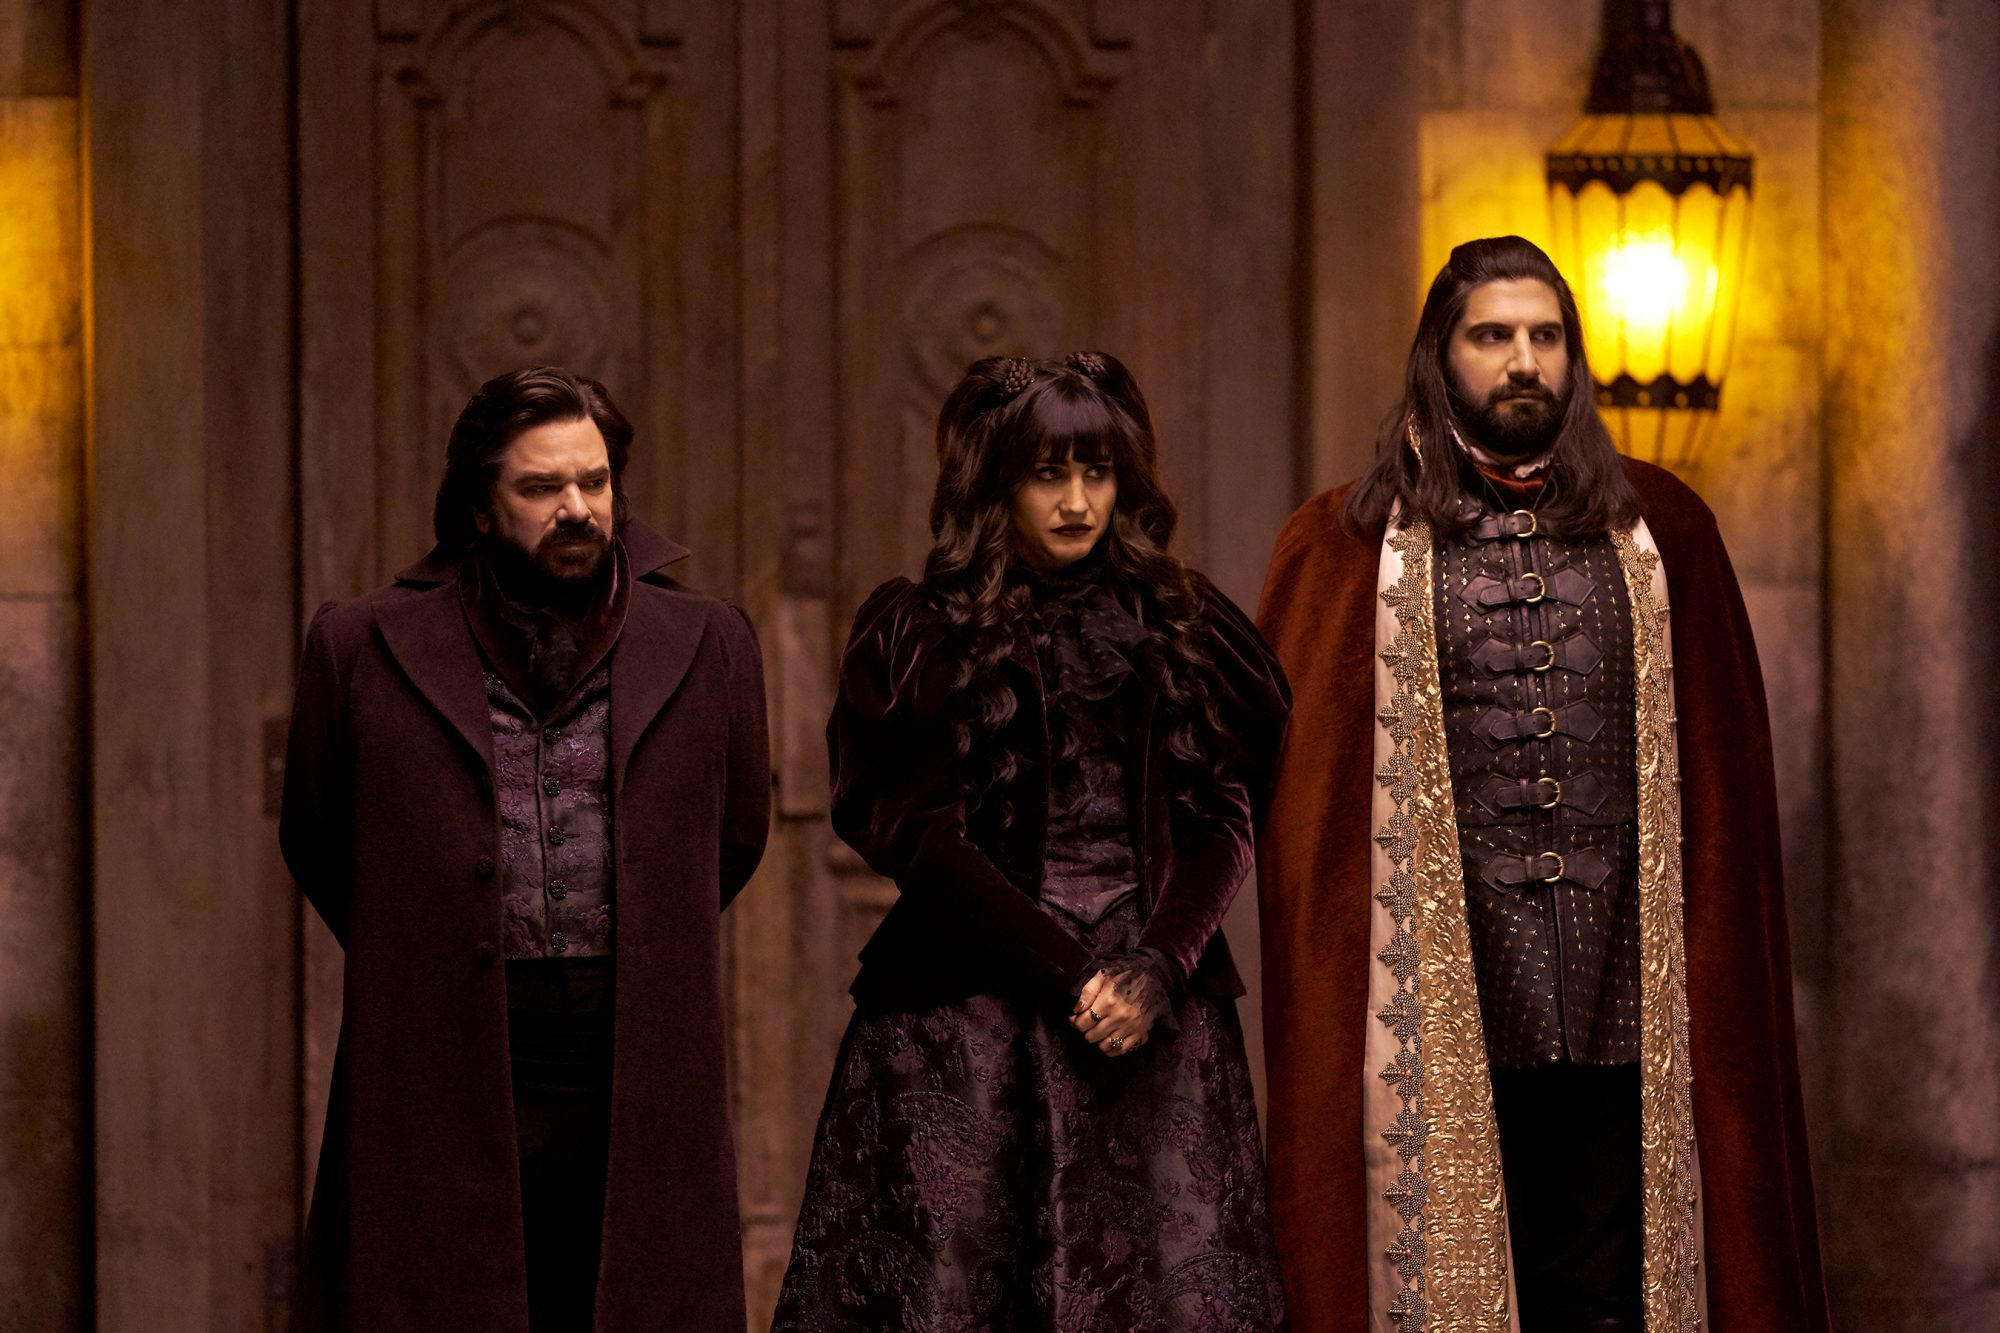 What We Do In the Shadows - Season 1, Episode 7